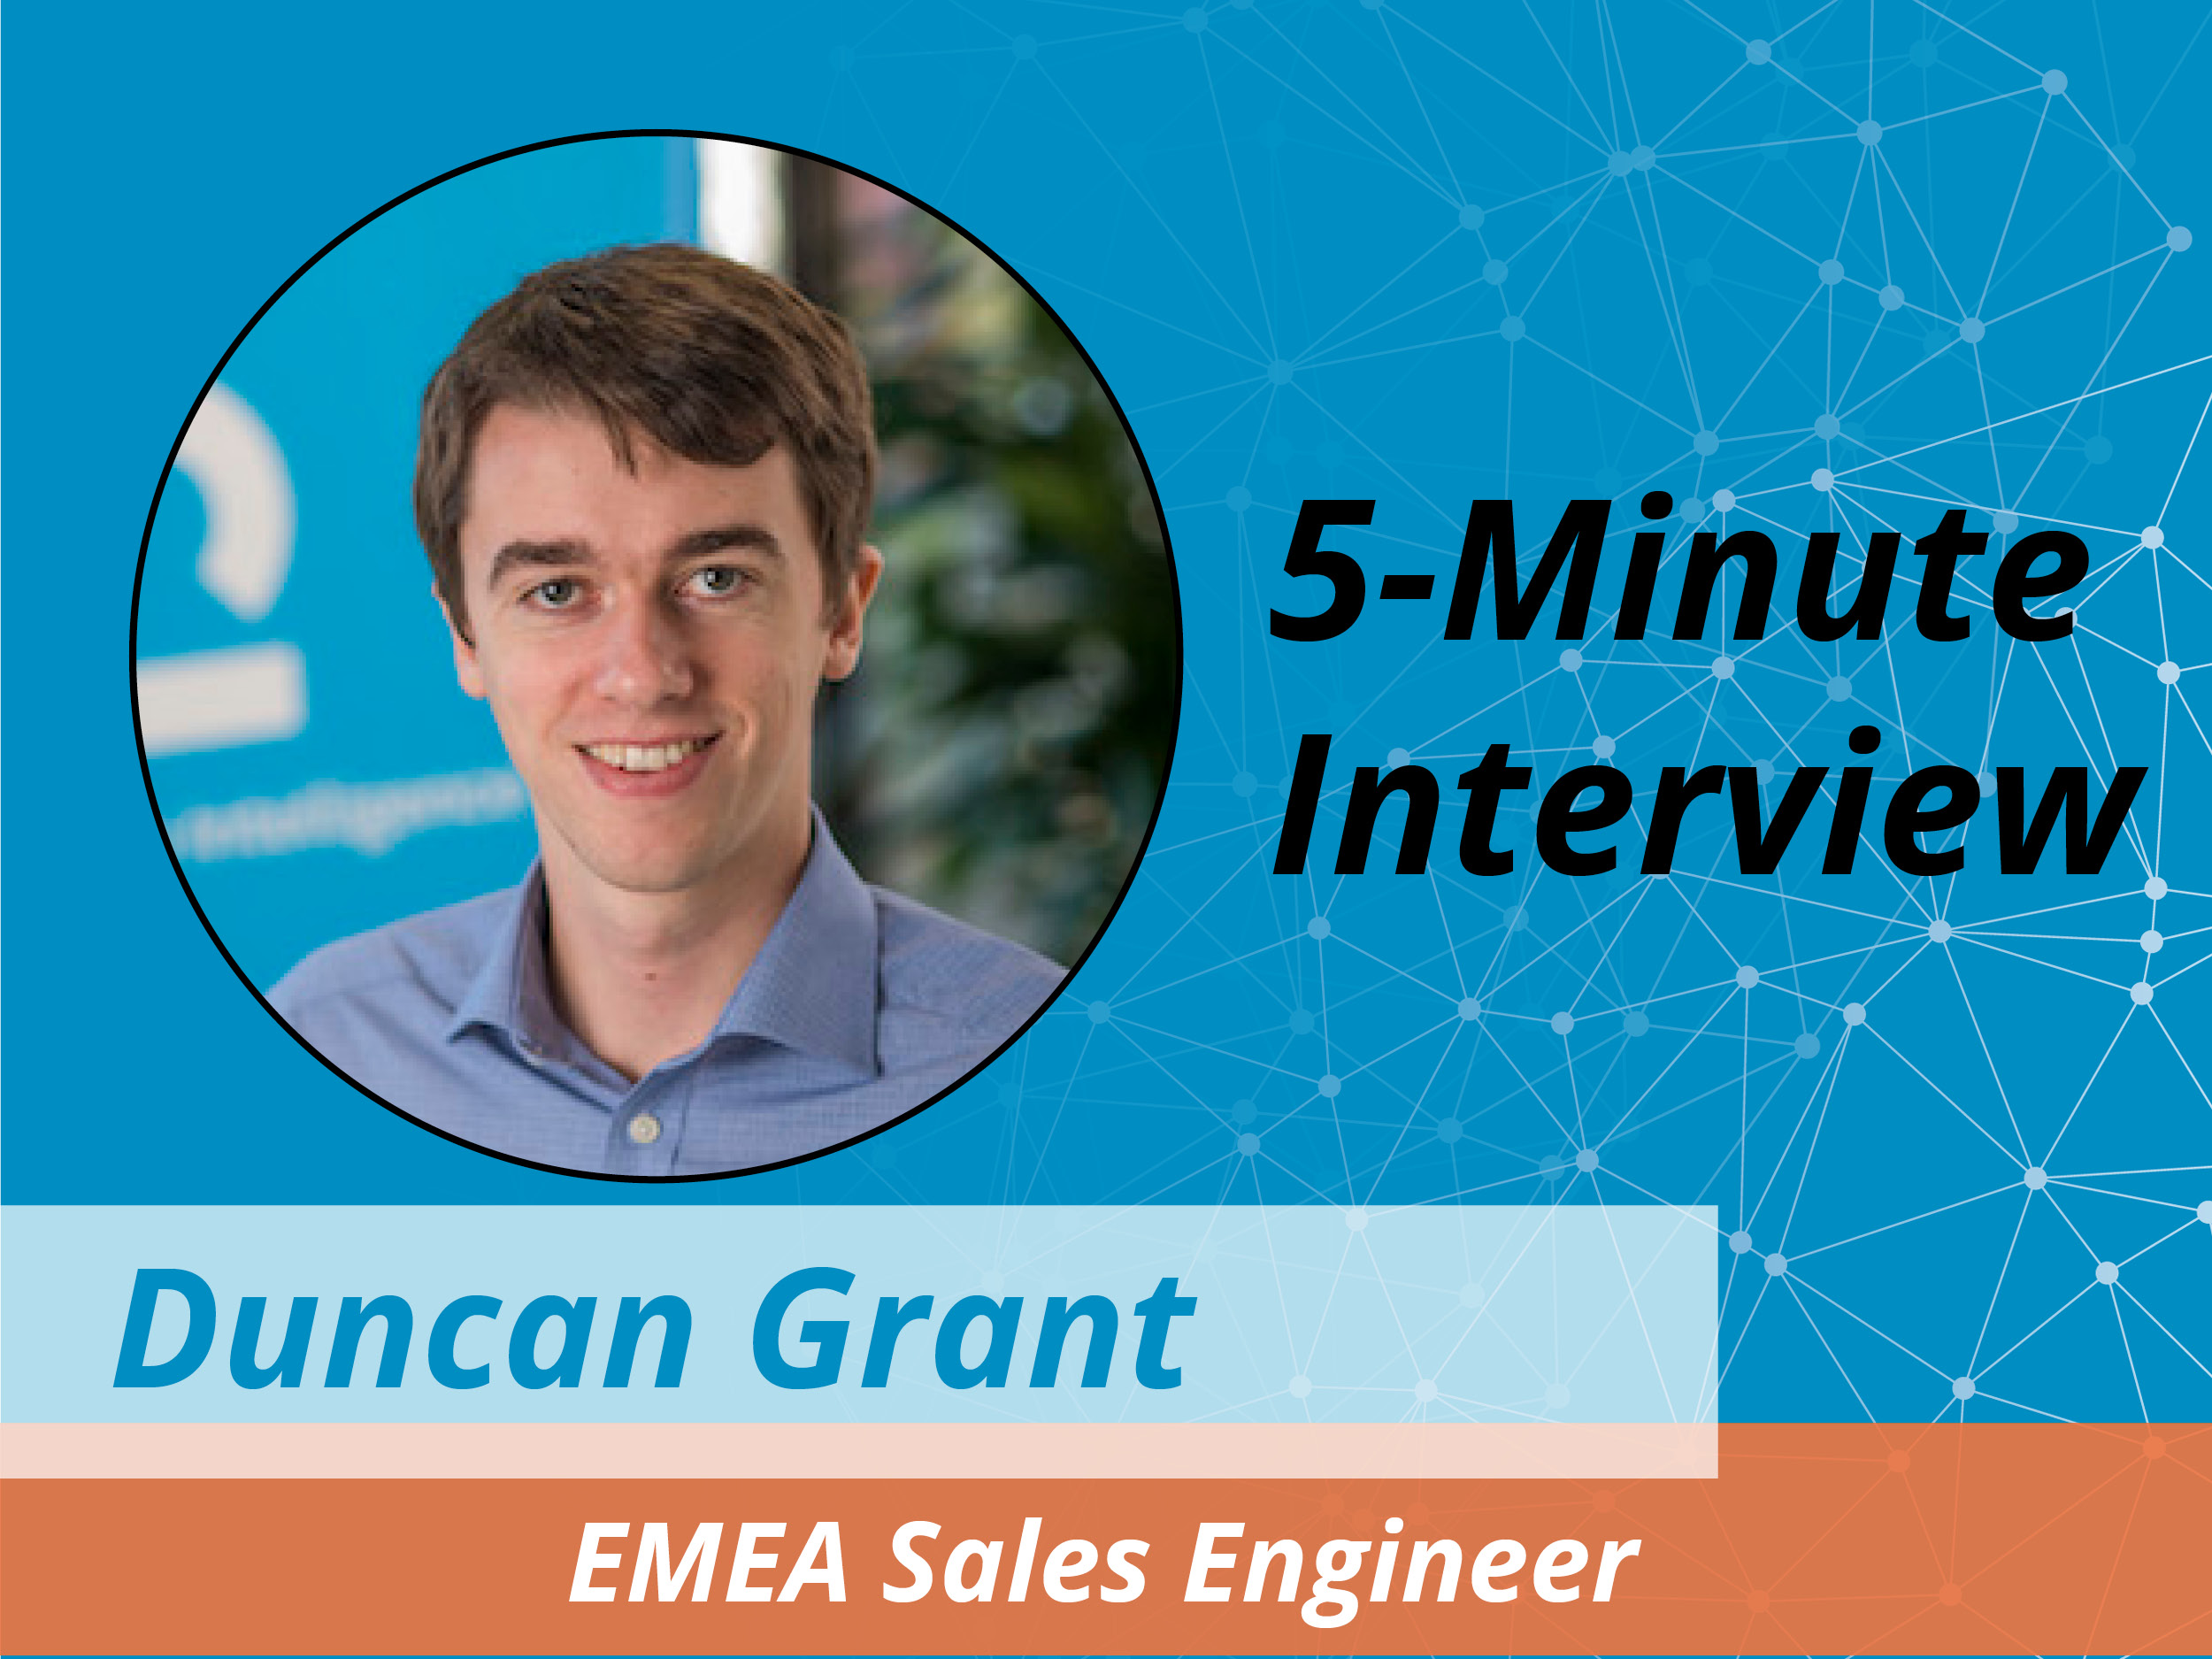 Catch this week's 5-Minute Interview with Duncan Grant, EMEA Sales Engineer, Cambridge Intelligence